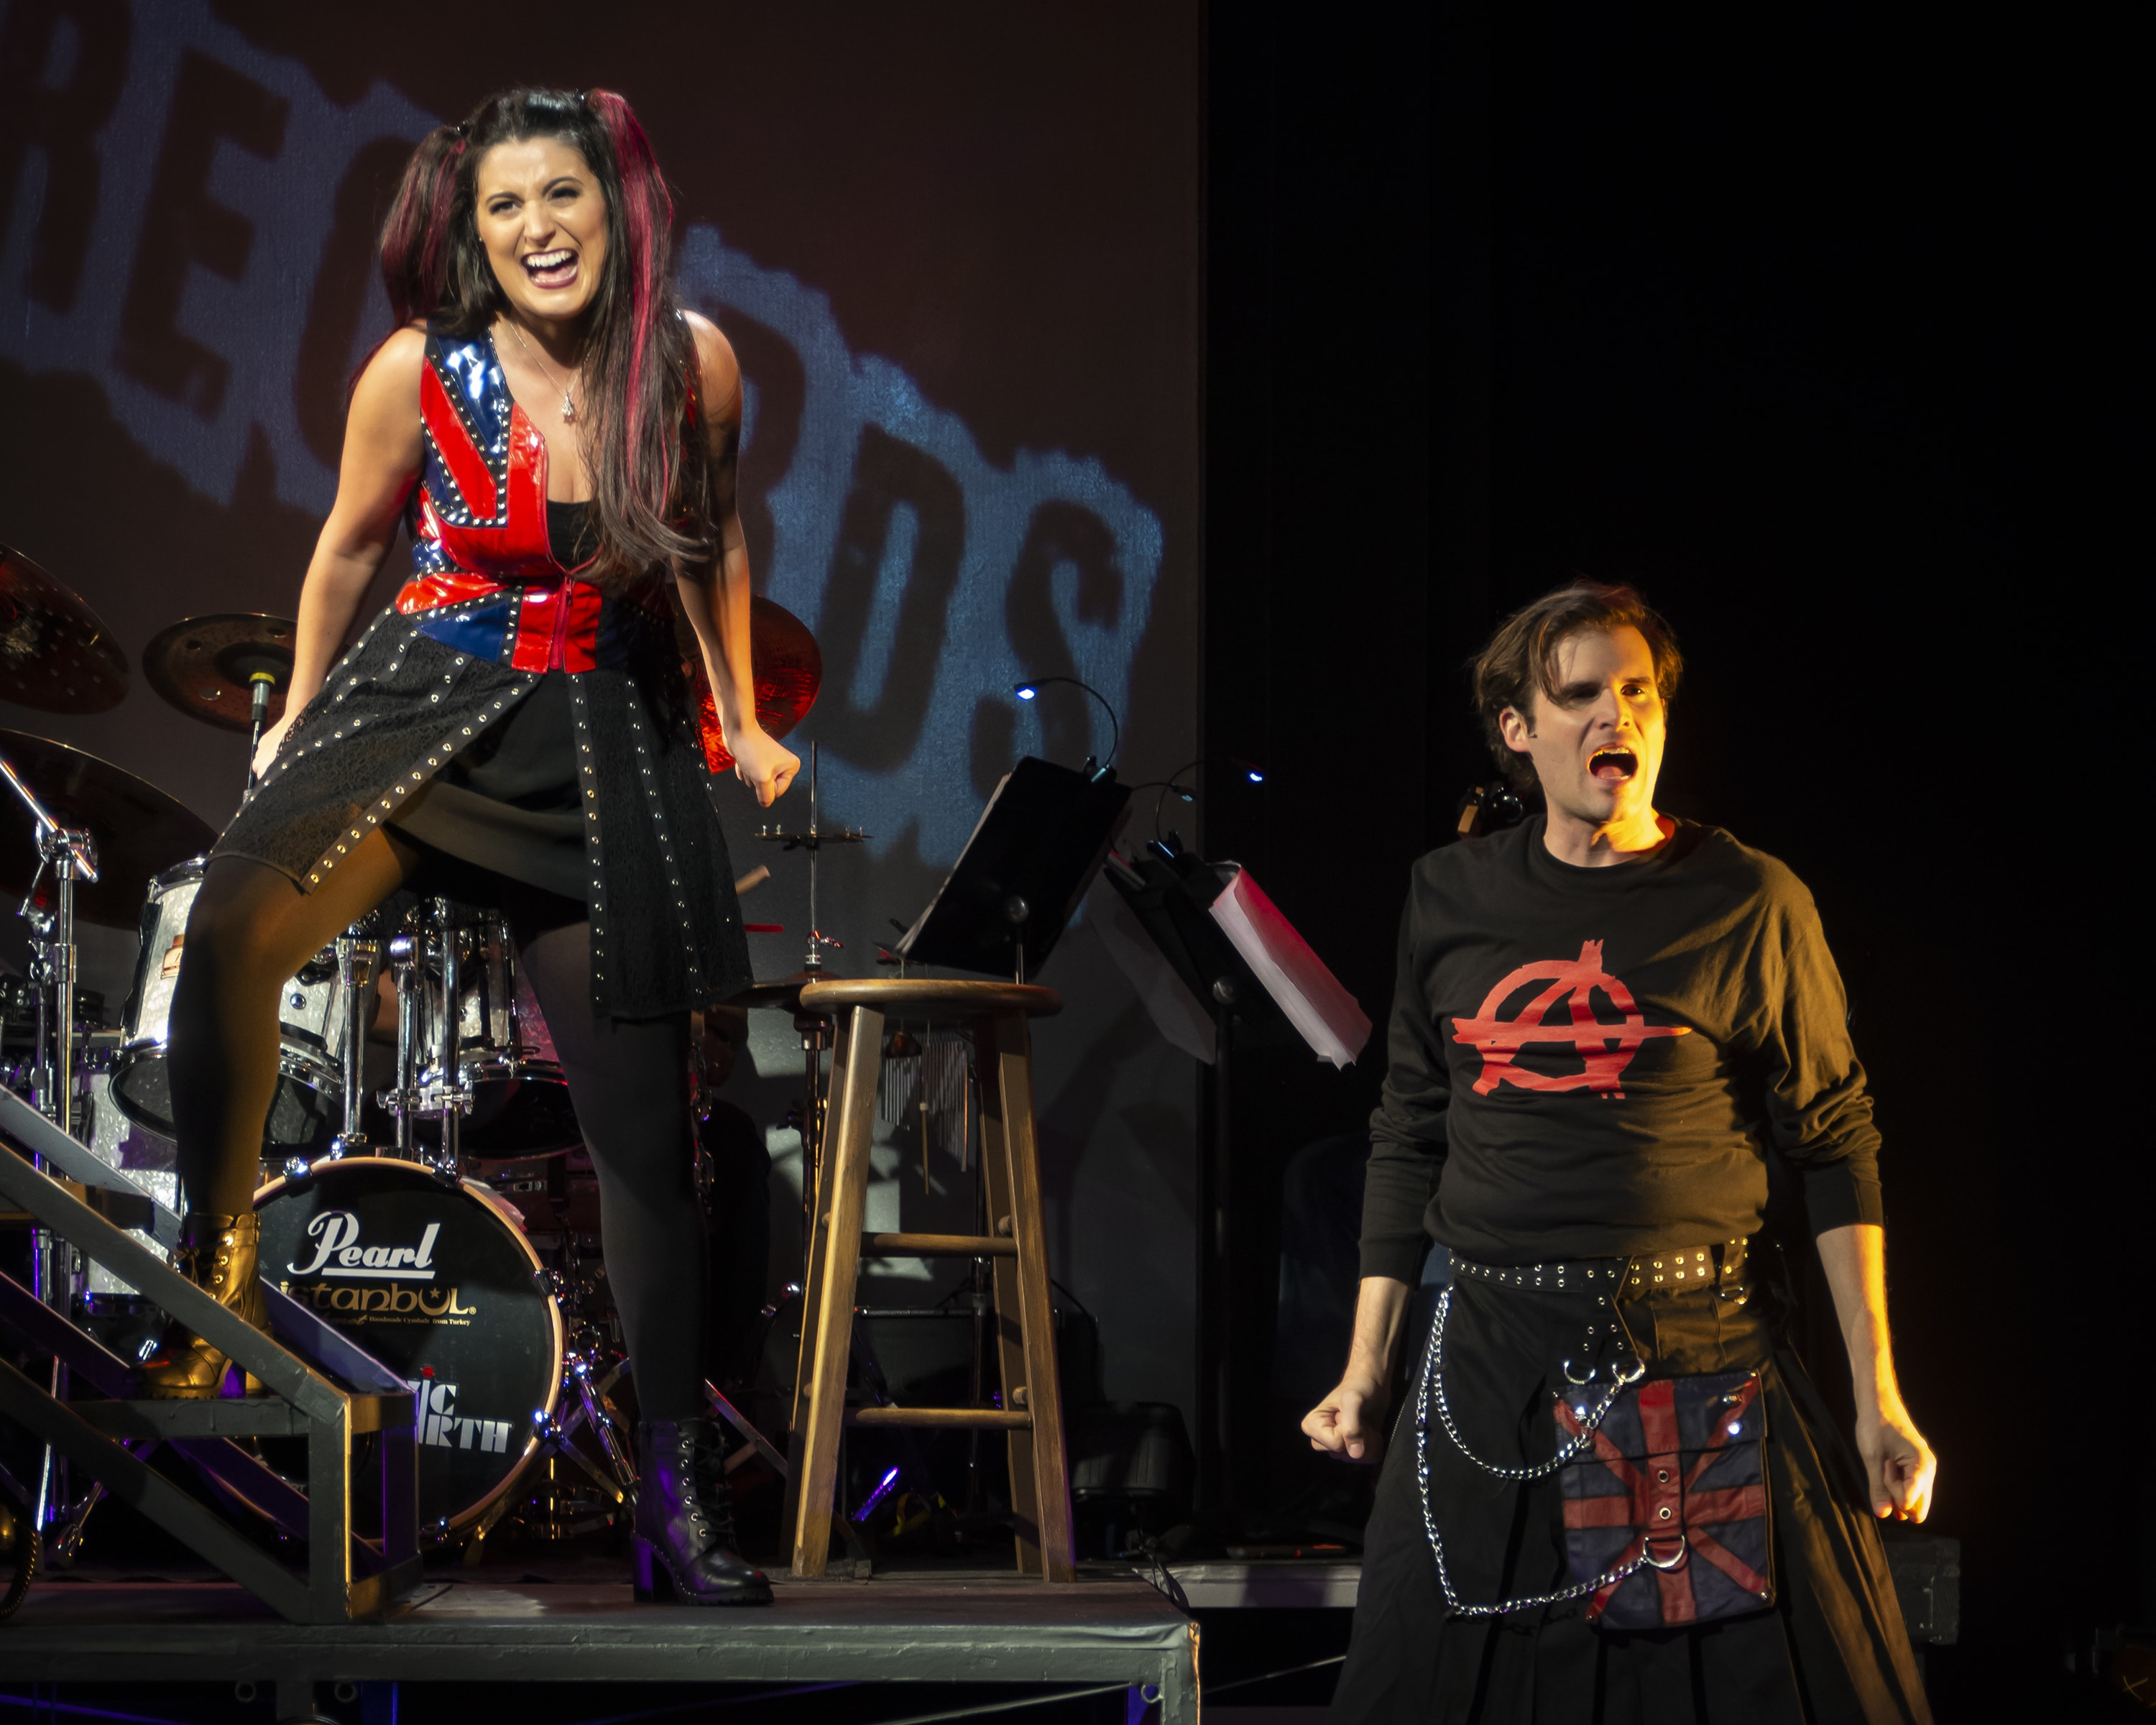 Candice Shedd-Thompson and Matthew Schleigh in Rooms: A Rock Romance, now playing at MetroStage. Photo by Chris Banks.